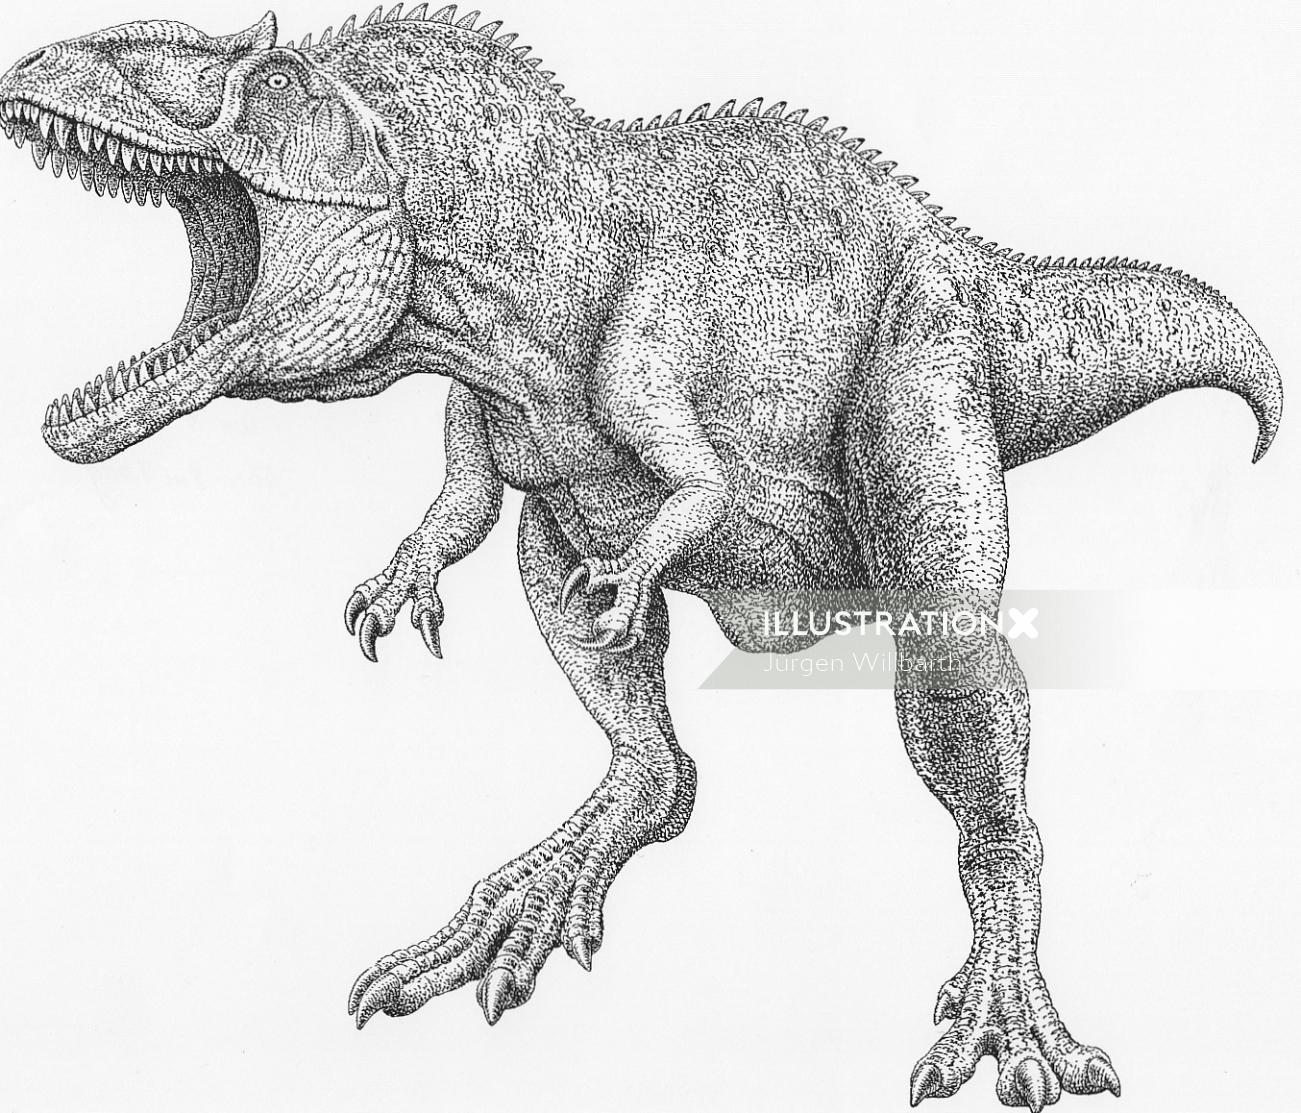 Dinosaur black and white artwork